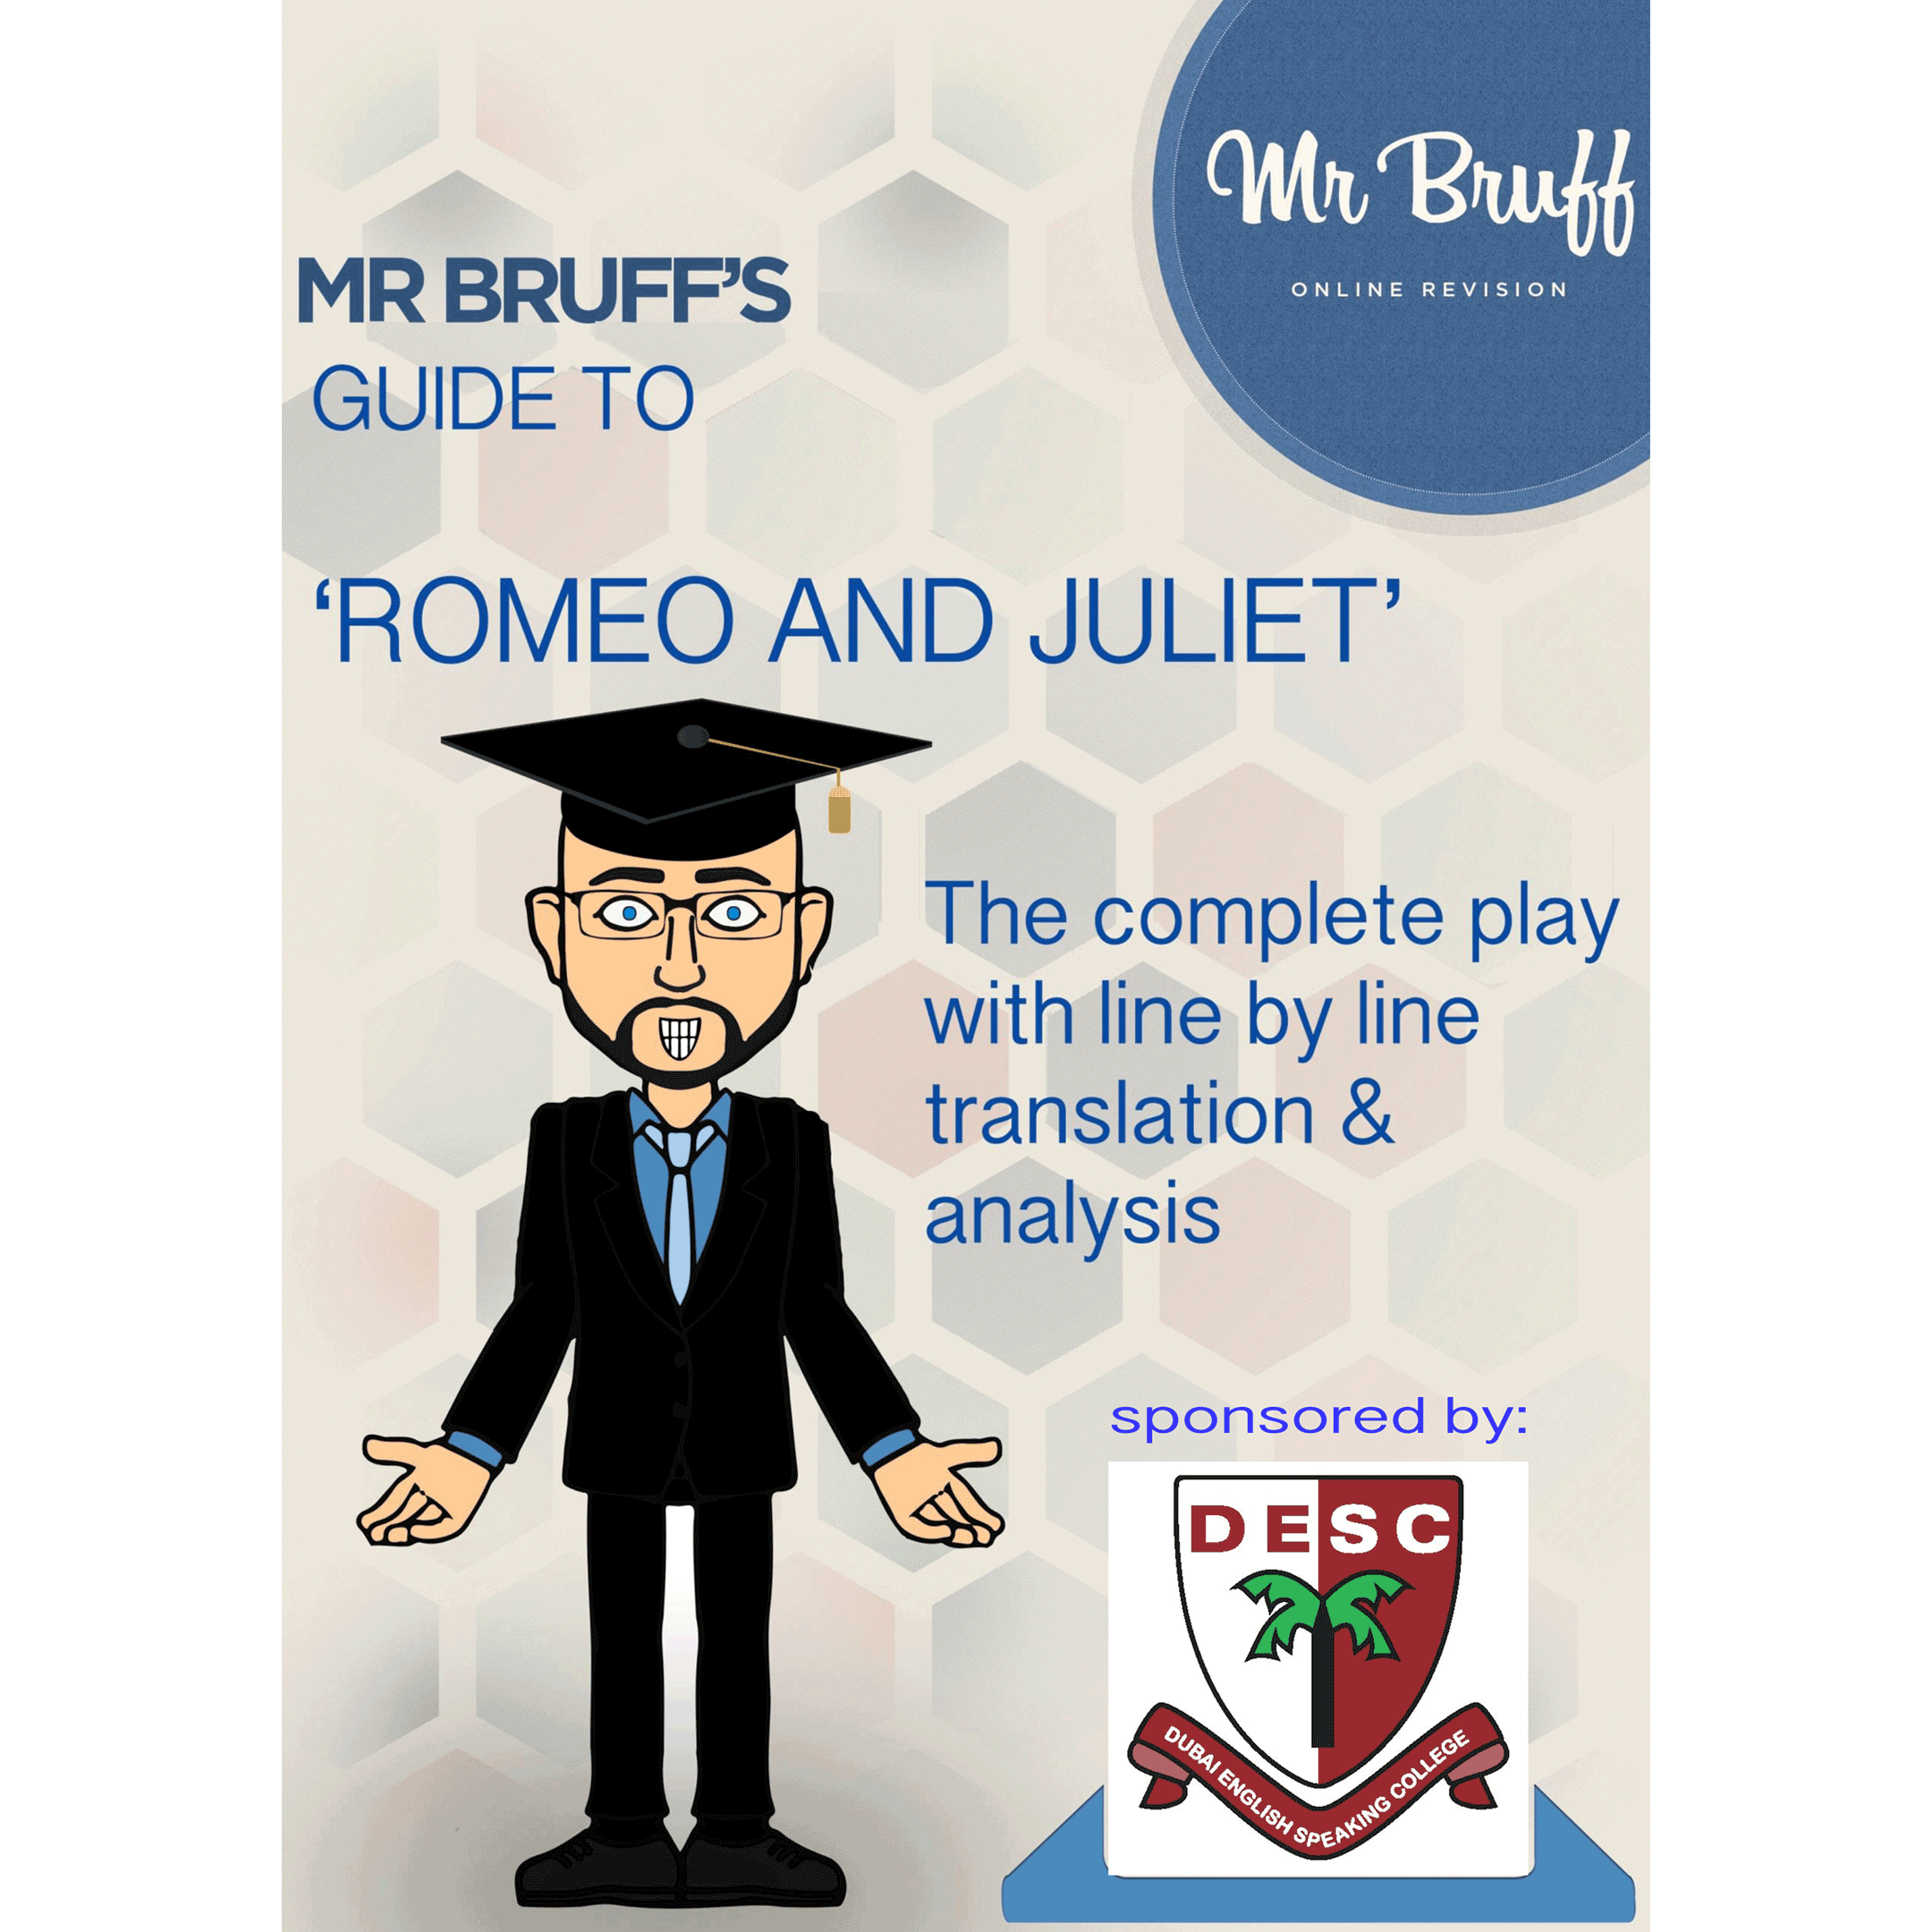 an analysis of shakespeares romeo and juliet - 6-romeo and juliet summary: caught in a dangerous world r omeo and juliet is set in italy in the city of verona, a place famous, in shakespeare's time, for violence.